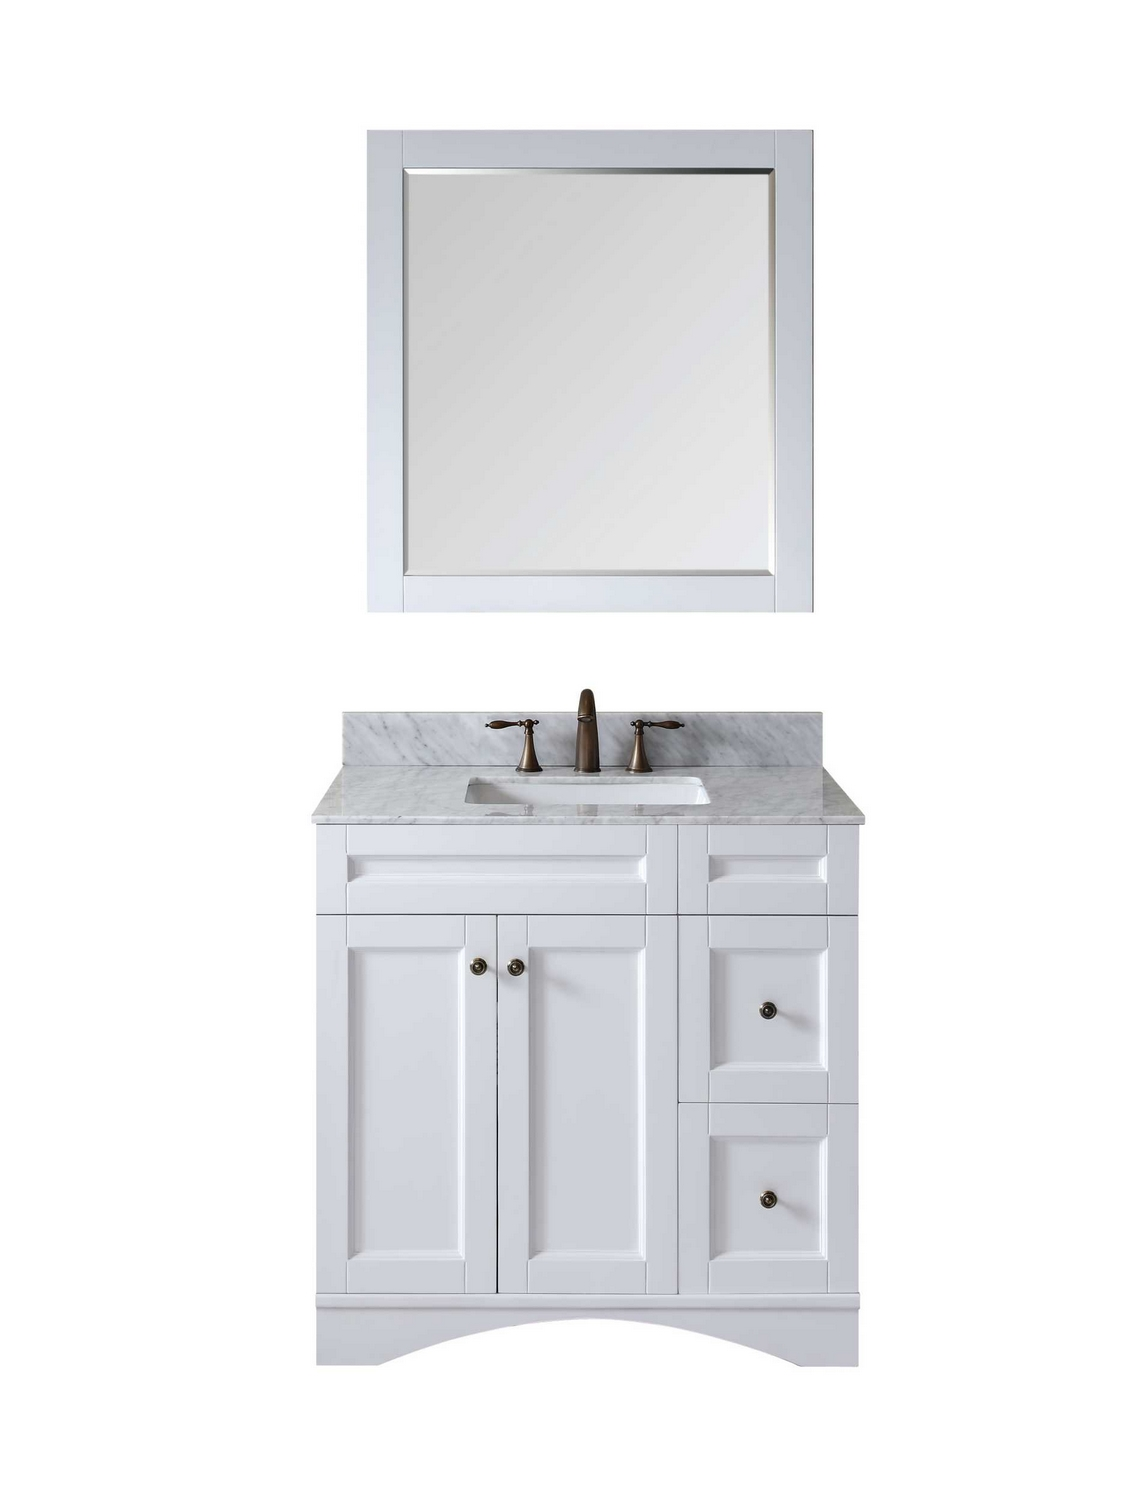 virtu usa elise 36 single bathroom vanity cabinet set in whiteitalian